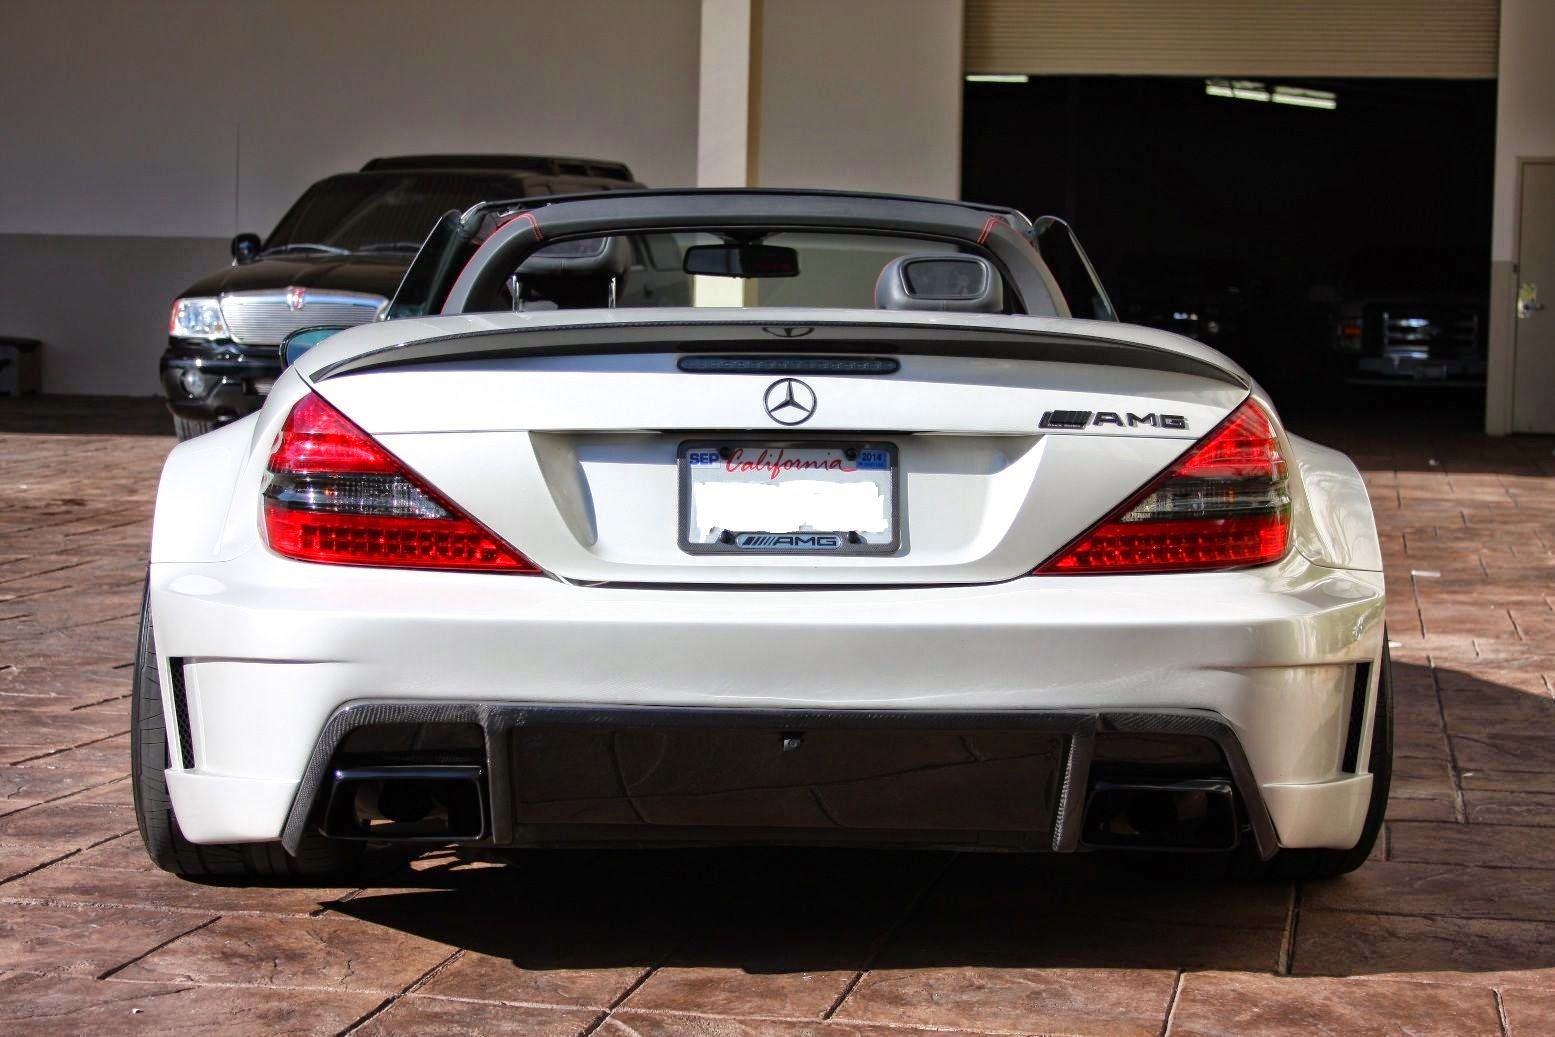 Mercedes benz r230 sl55 amg widebody benztuning for Mercedes benz amg kit